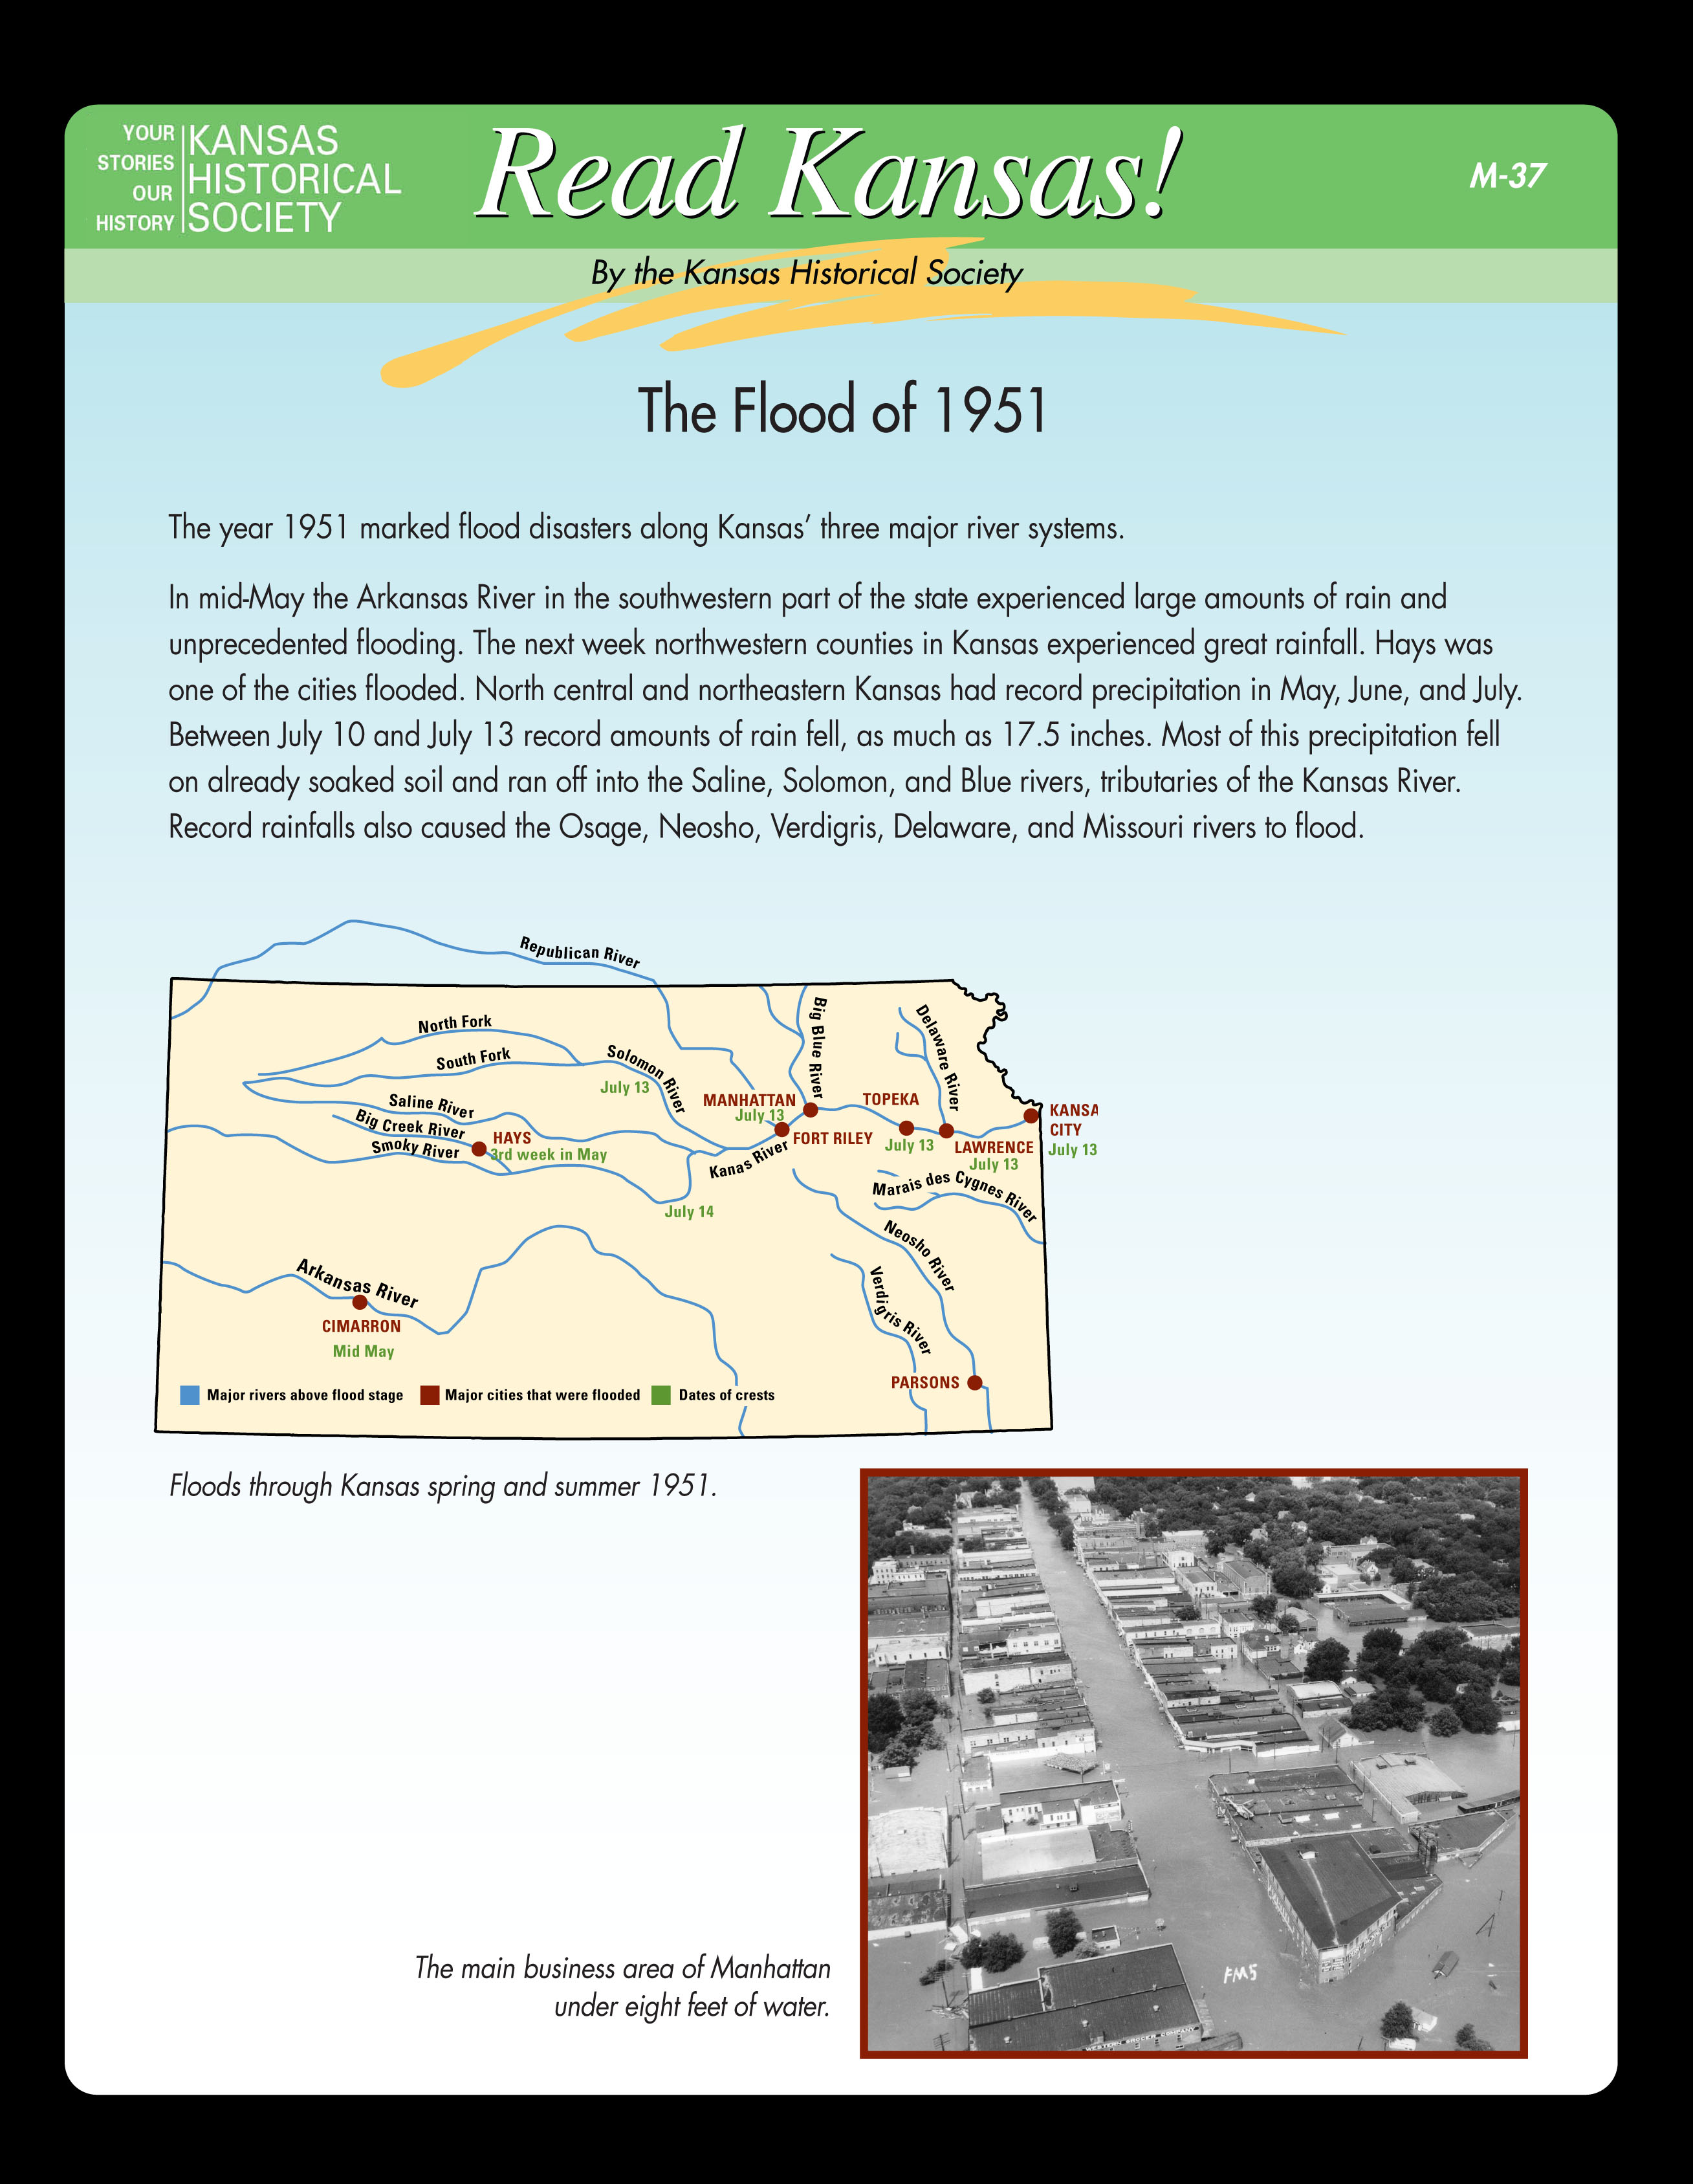 M-37 The Flood of 1951